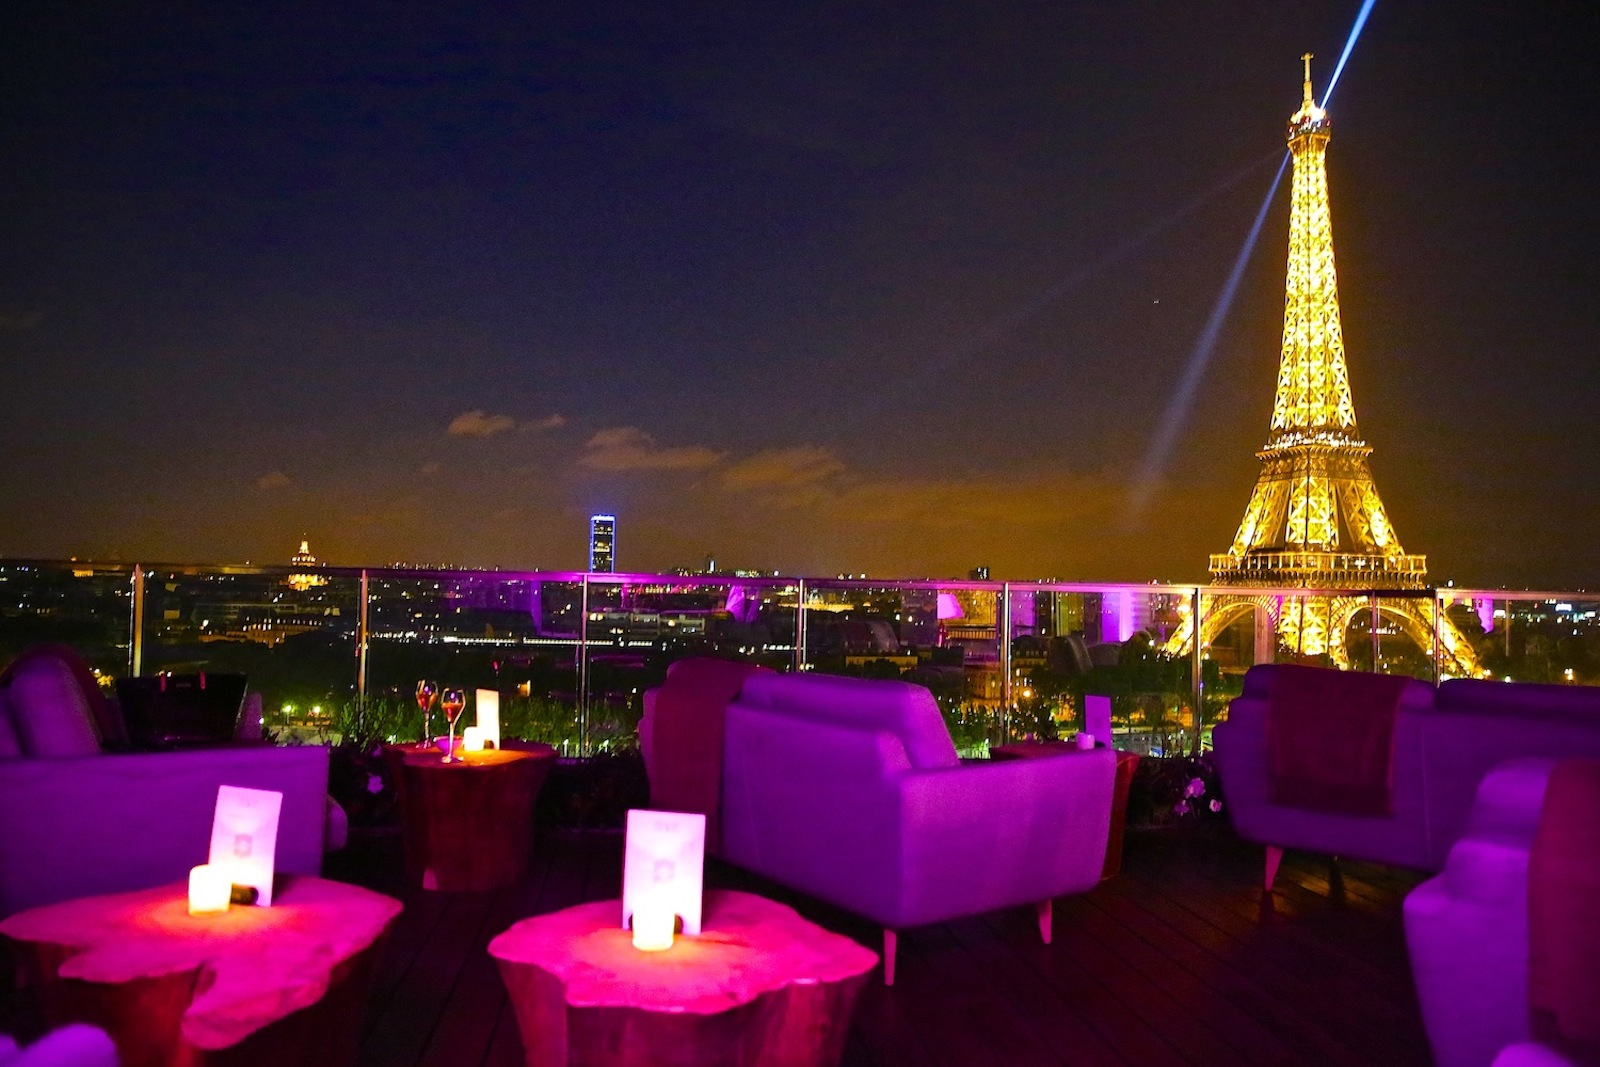 Le Meilleur The 15 Most Romantic Spots For Happy Hour With A View Ce Mois Ci Original 1024 x 768